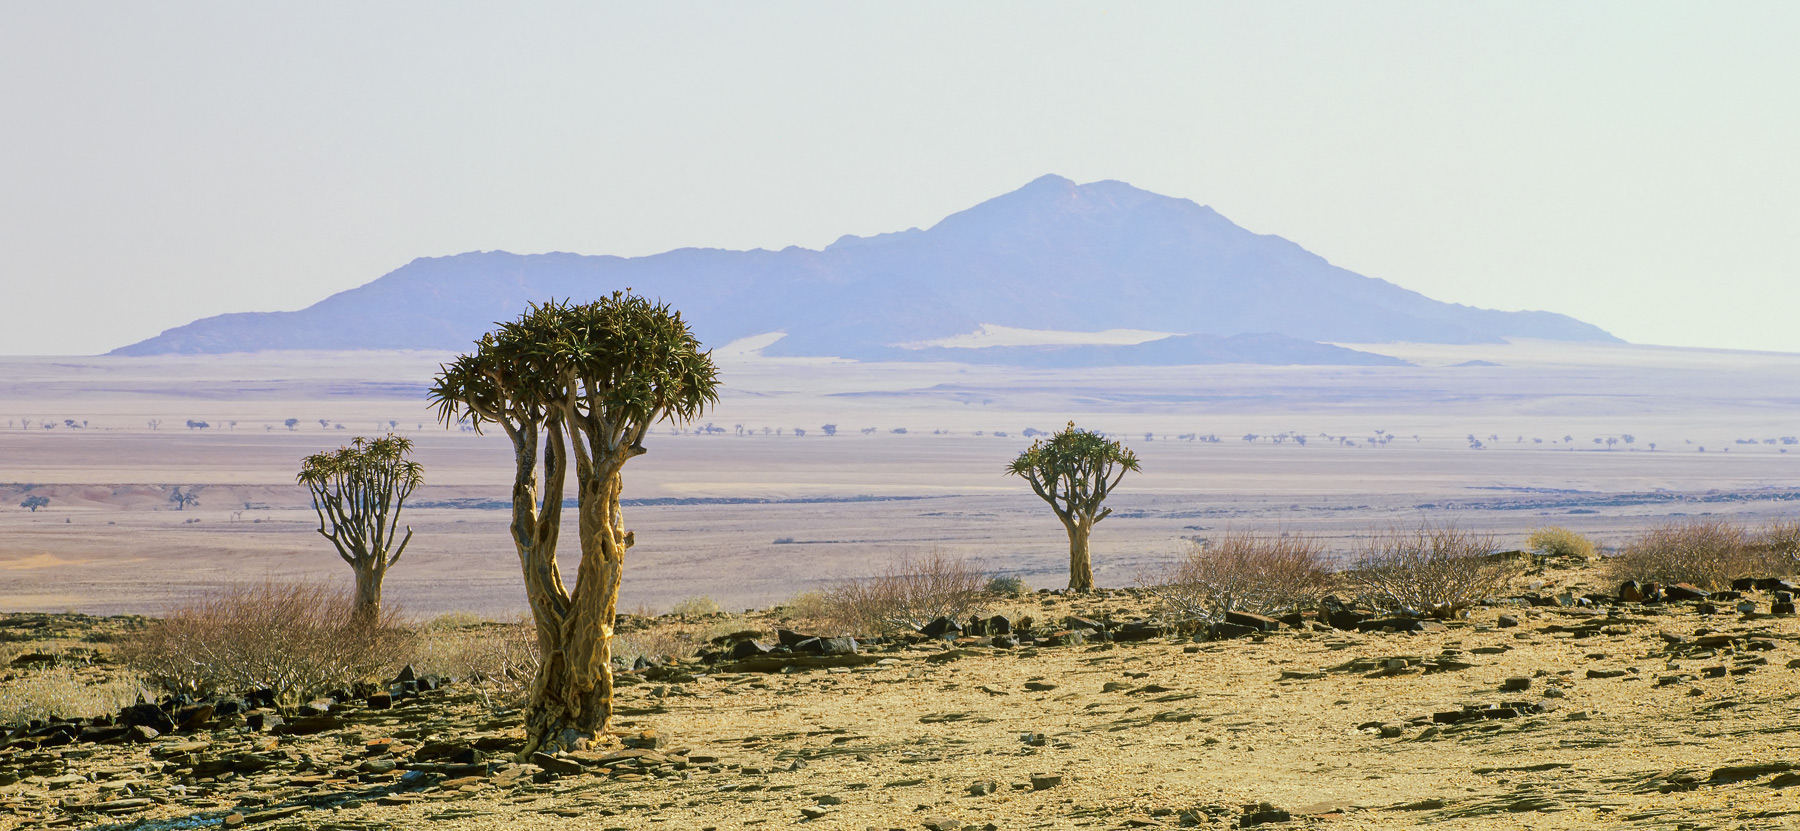 I had expressed an interest in obtaining a decent shot of some Quiver trees during our travels in Namibia when our driver claimed...